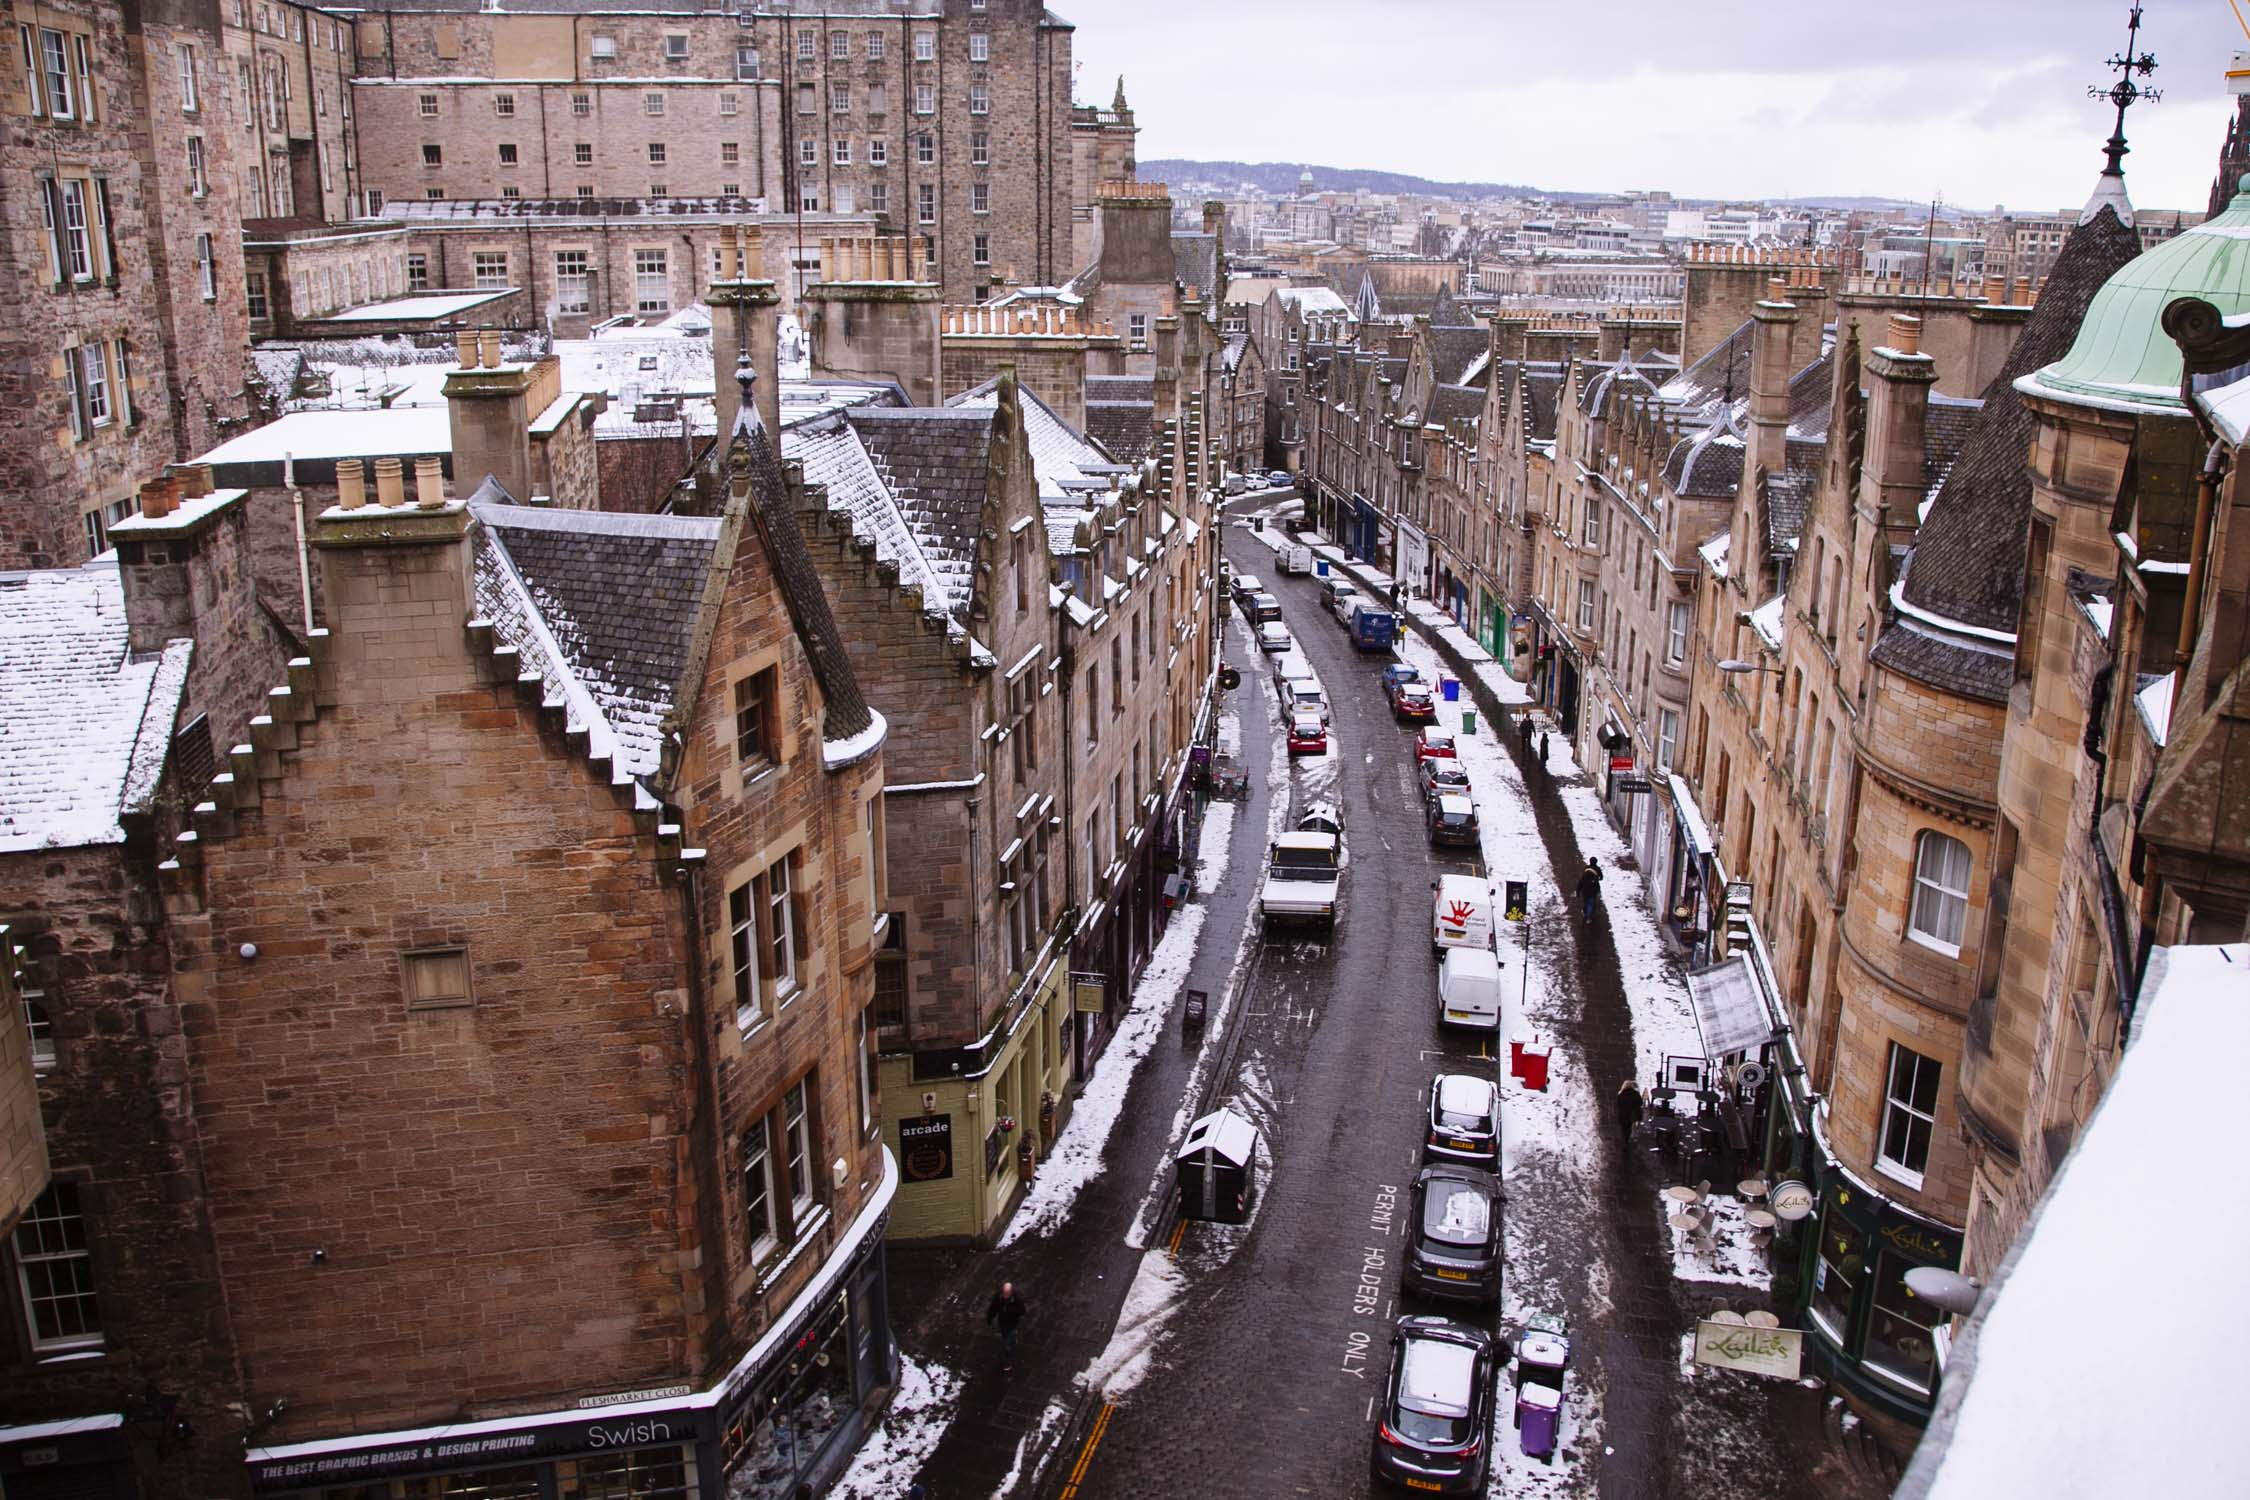 HOSTEL - Edinburgh Backpackers